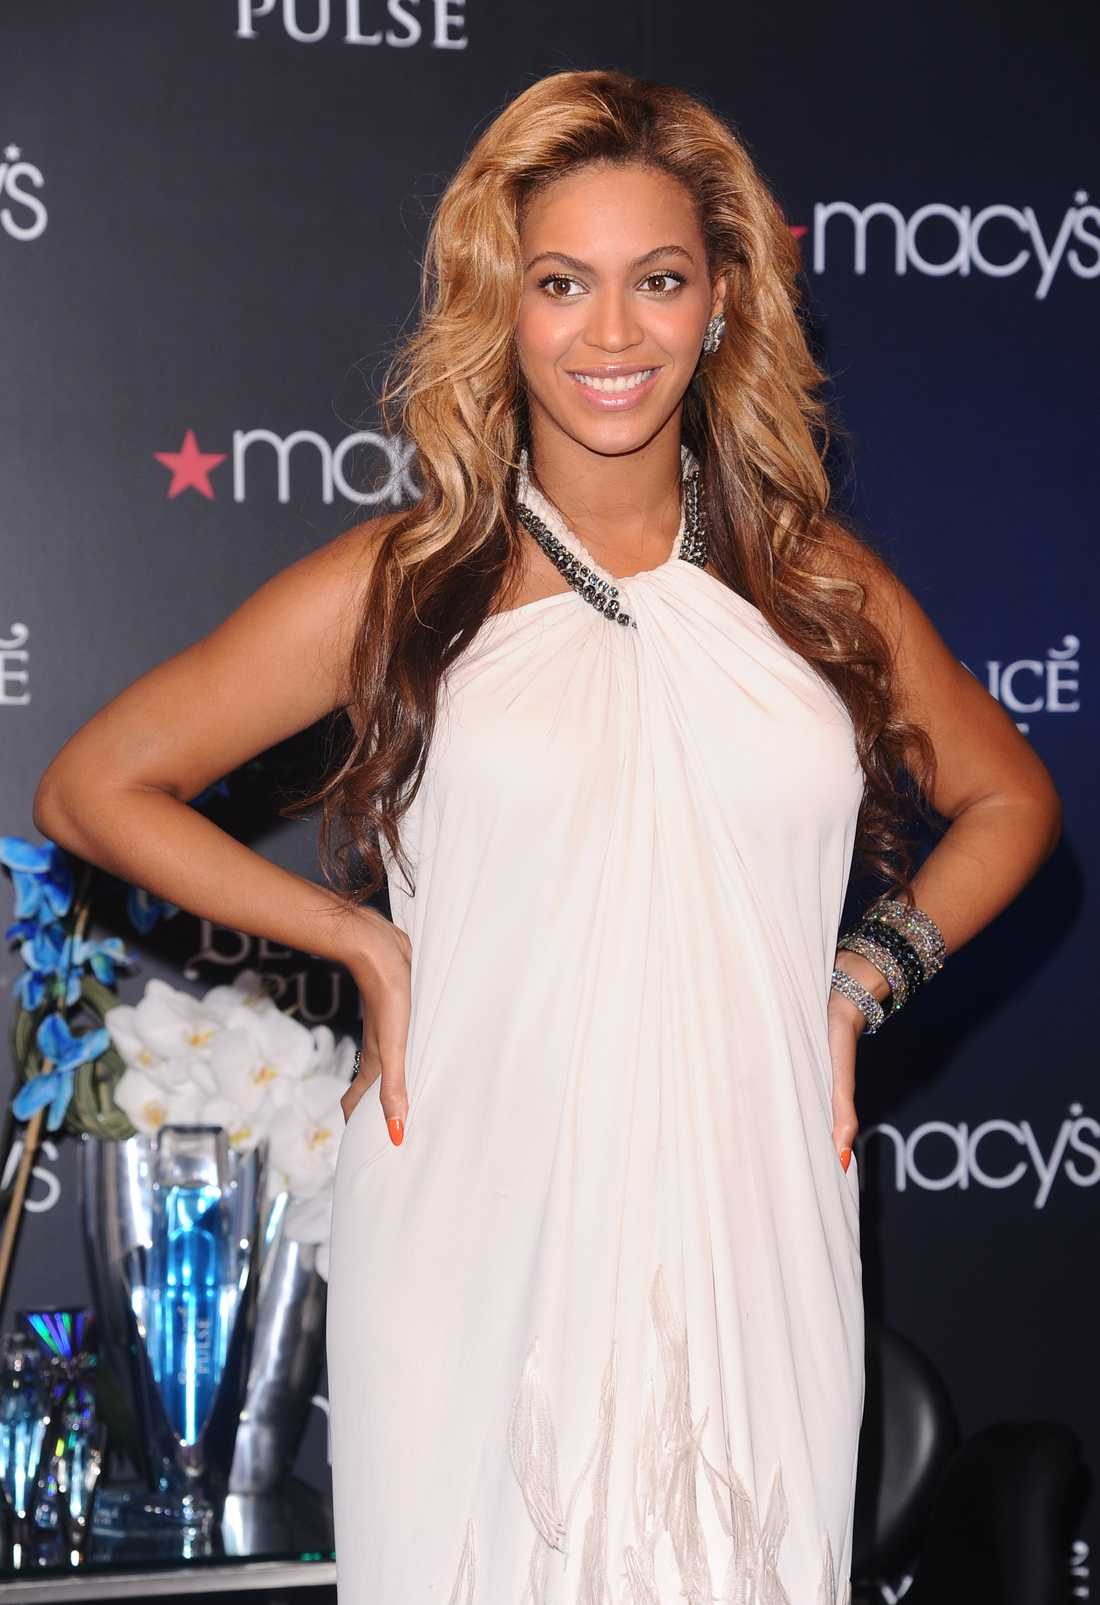 "Den 22 september lanserade Beyoncé sin nya doft ""Pulse"" på Macy's i New York."